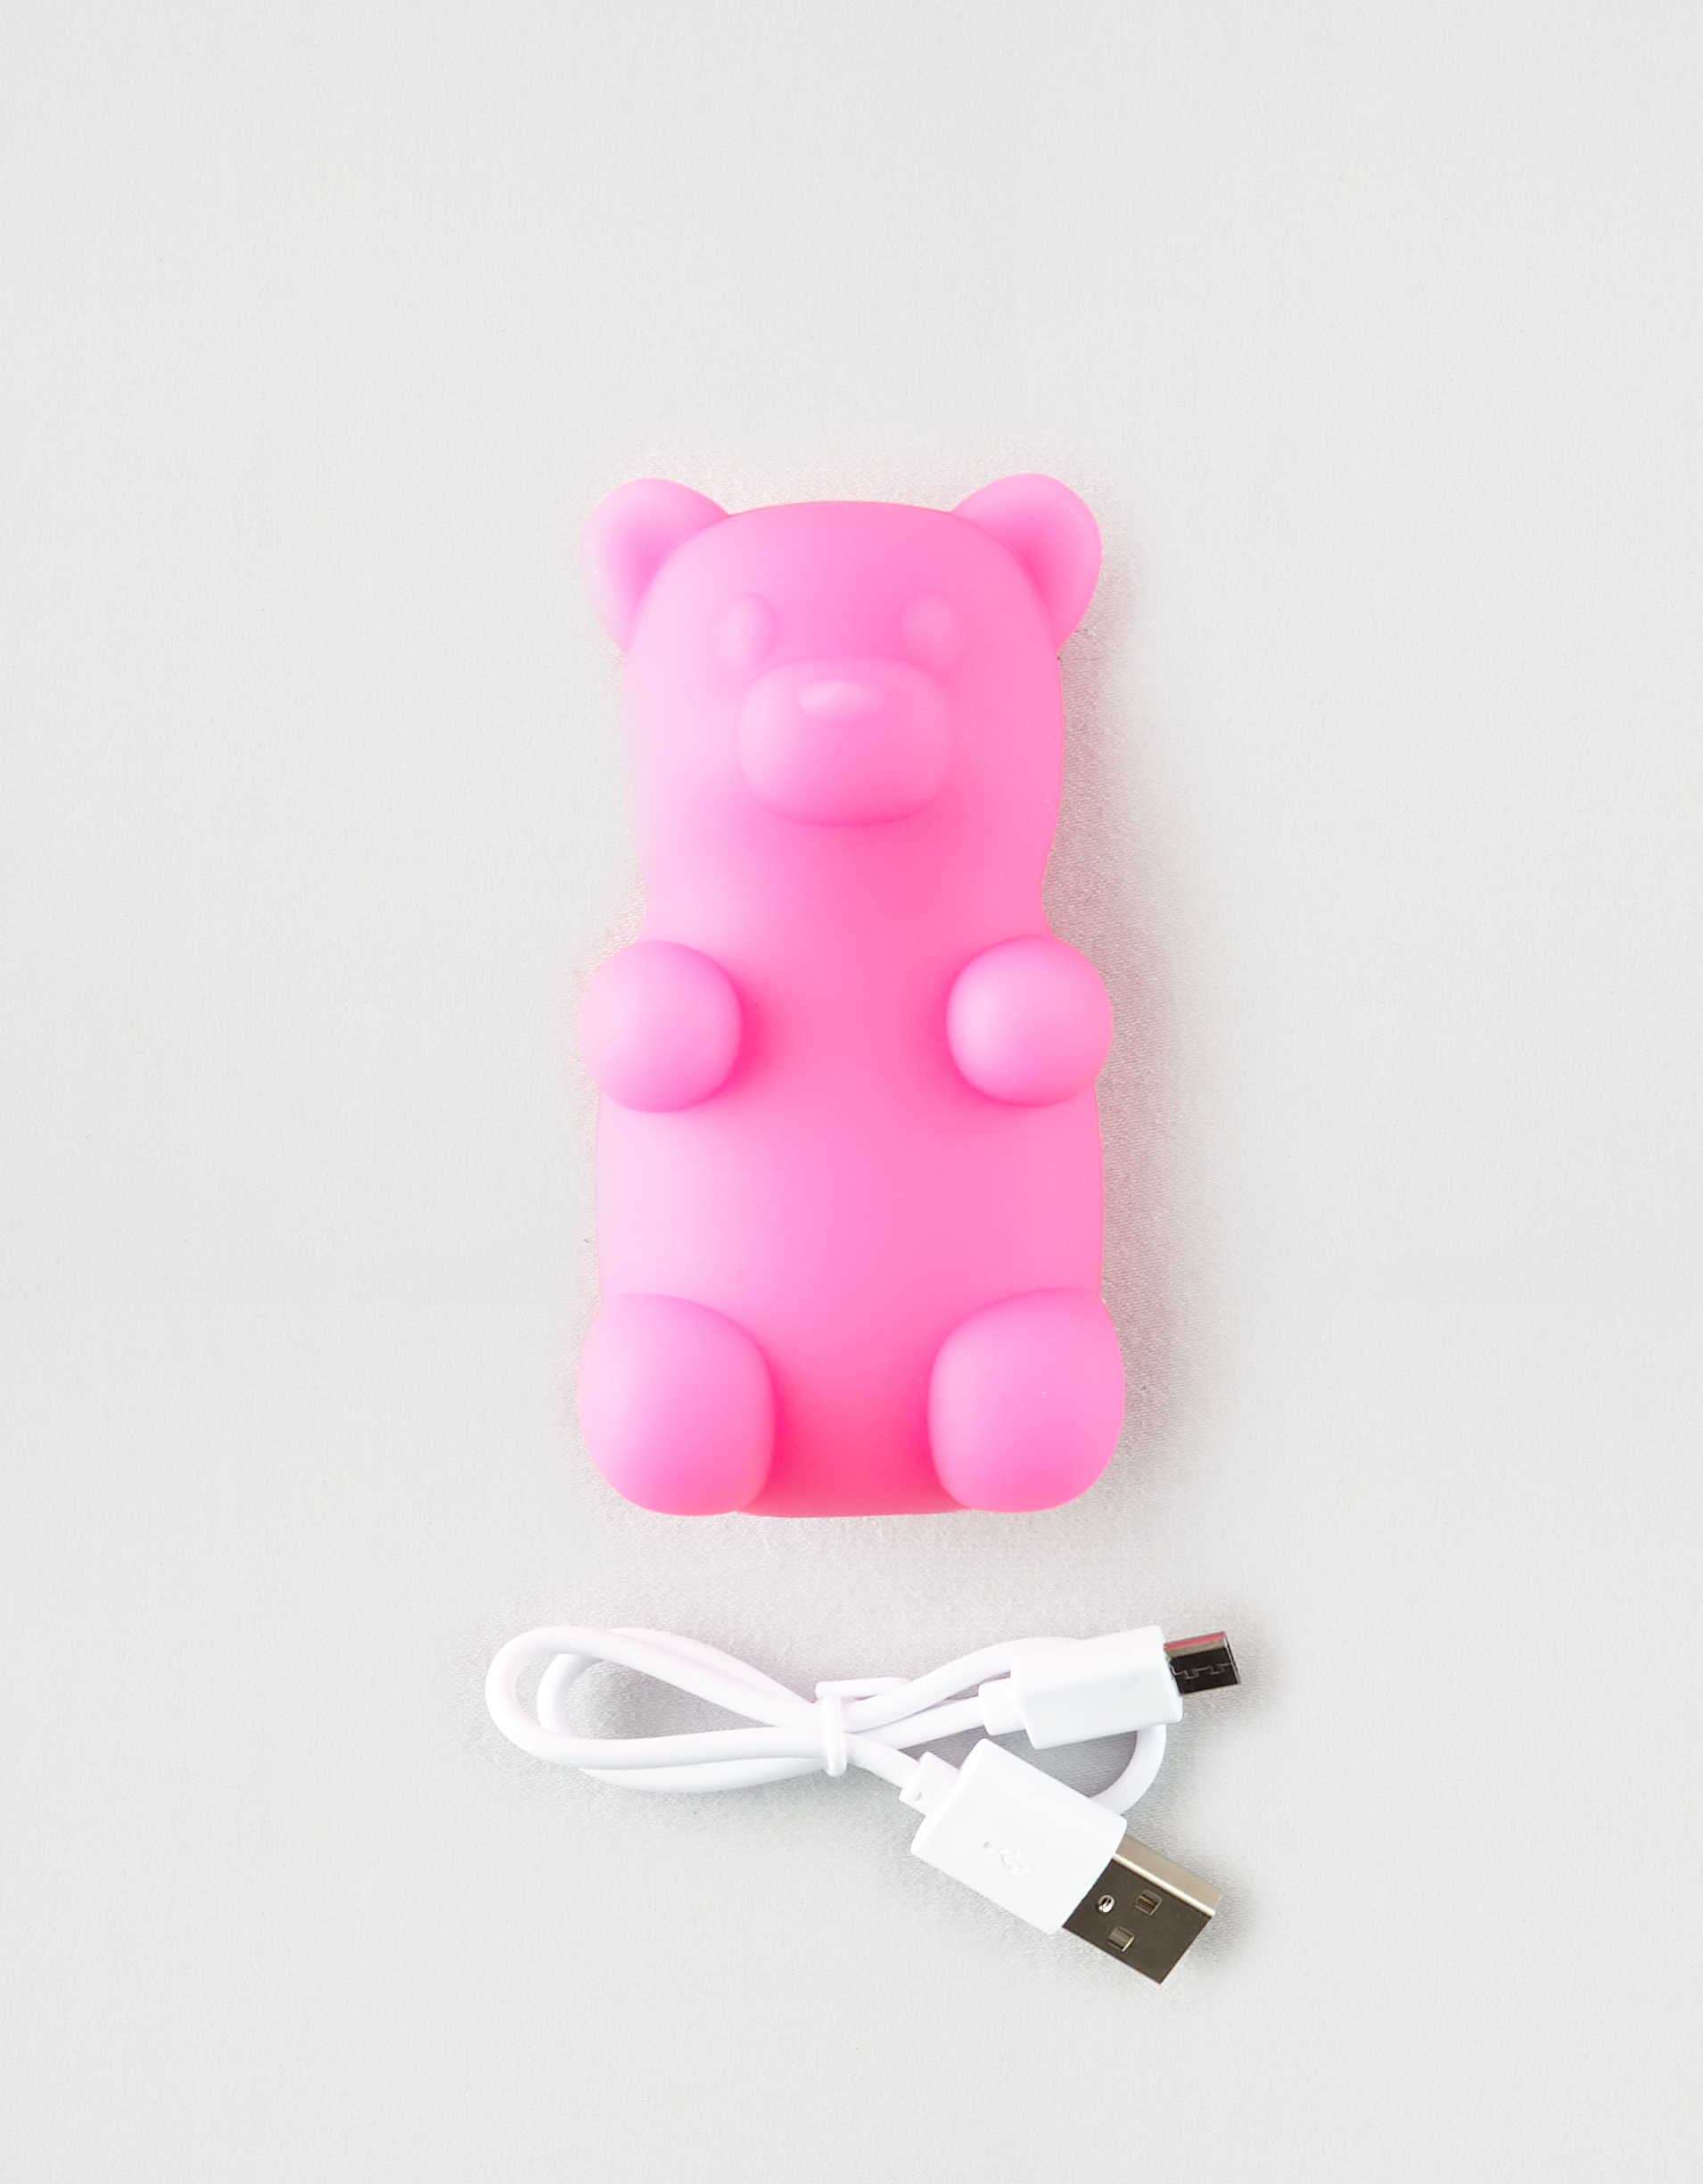 MojiPower Gummy Bear Portable Charger